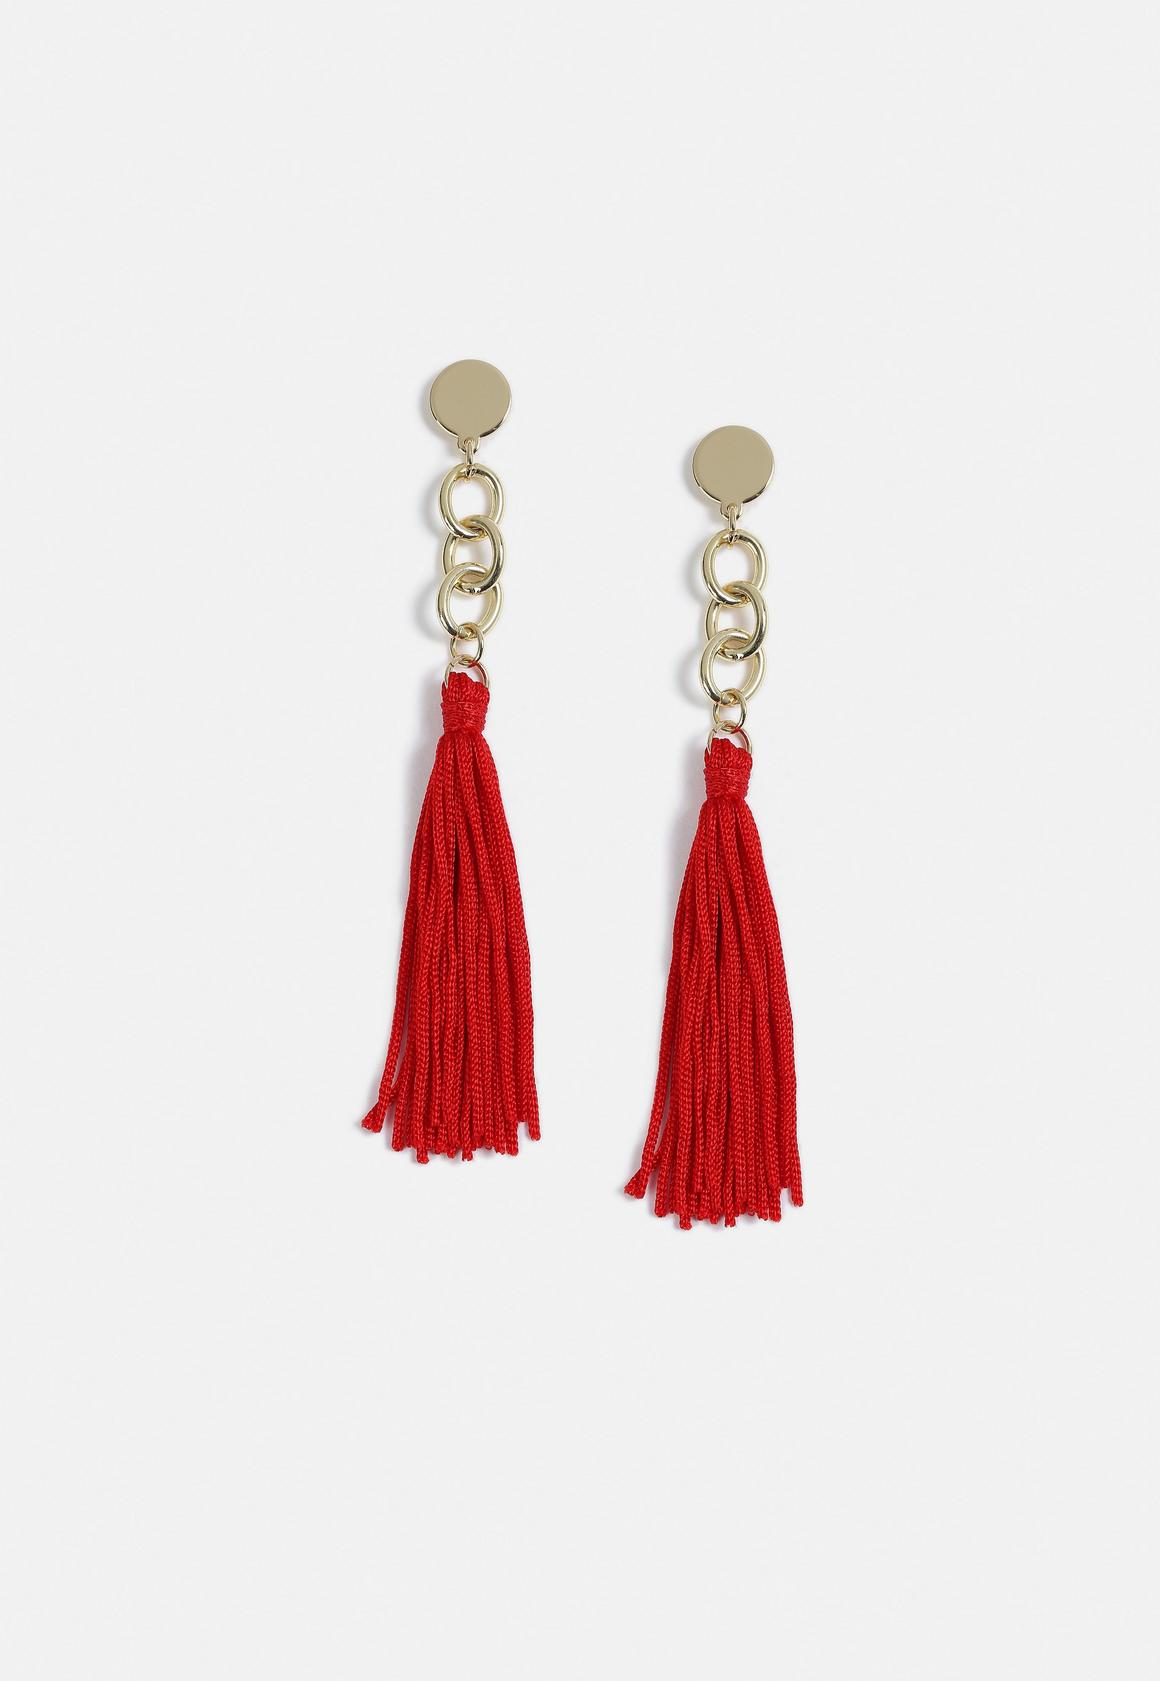 Missguided Red Tassel Earrings- $12